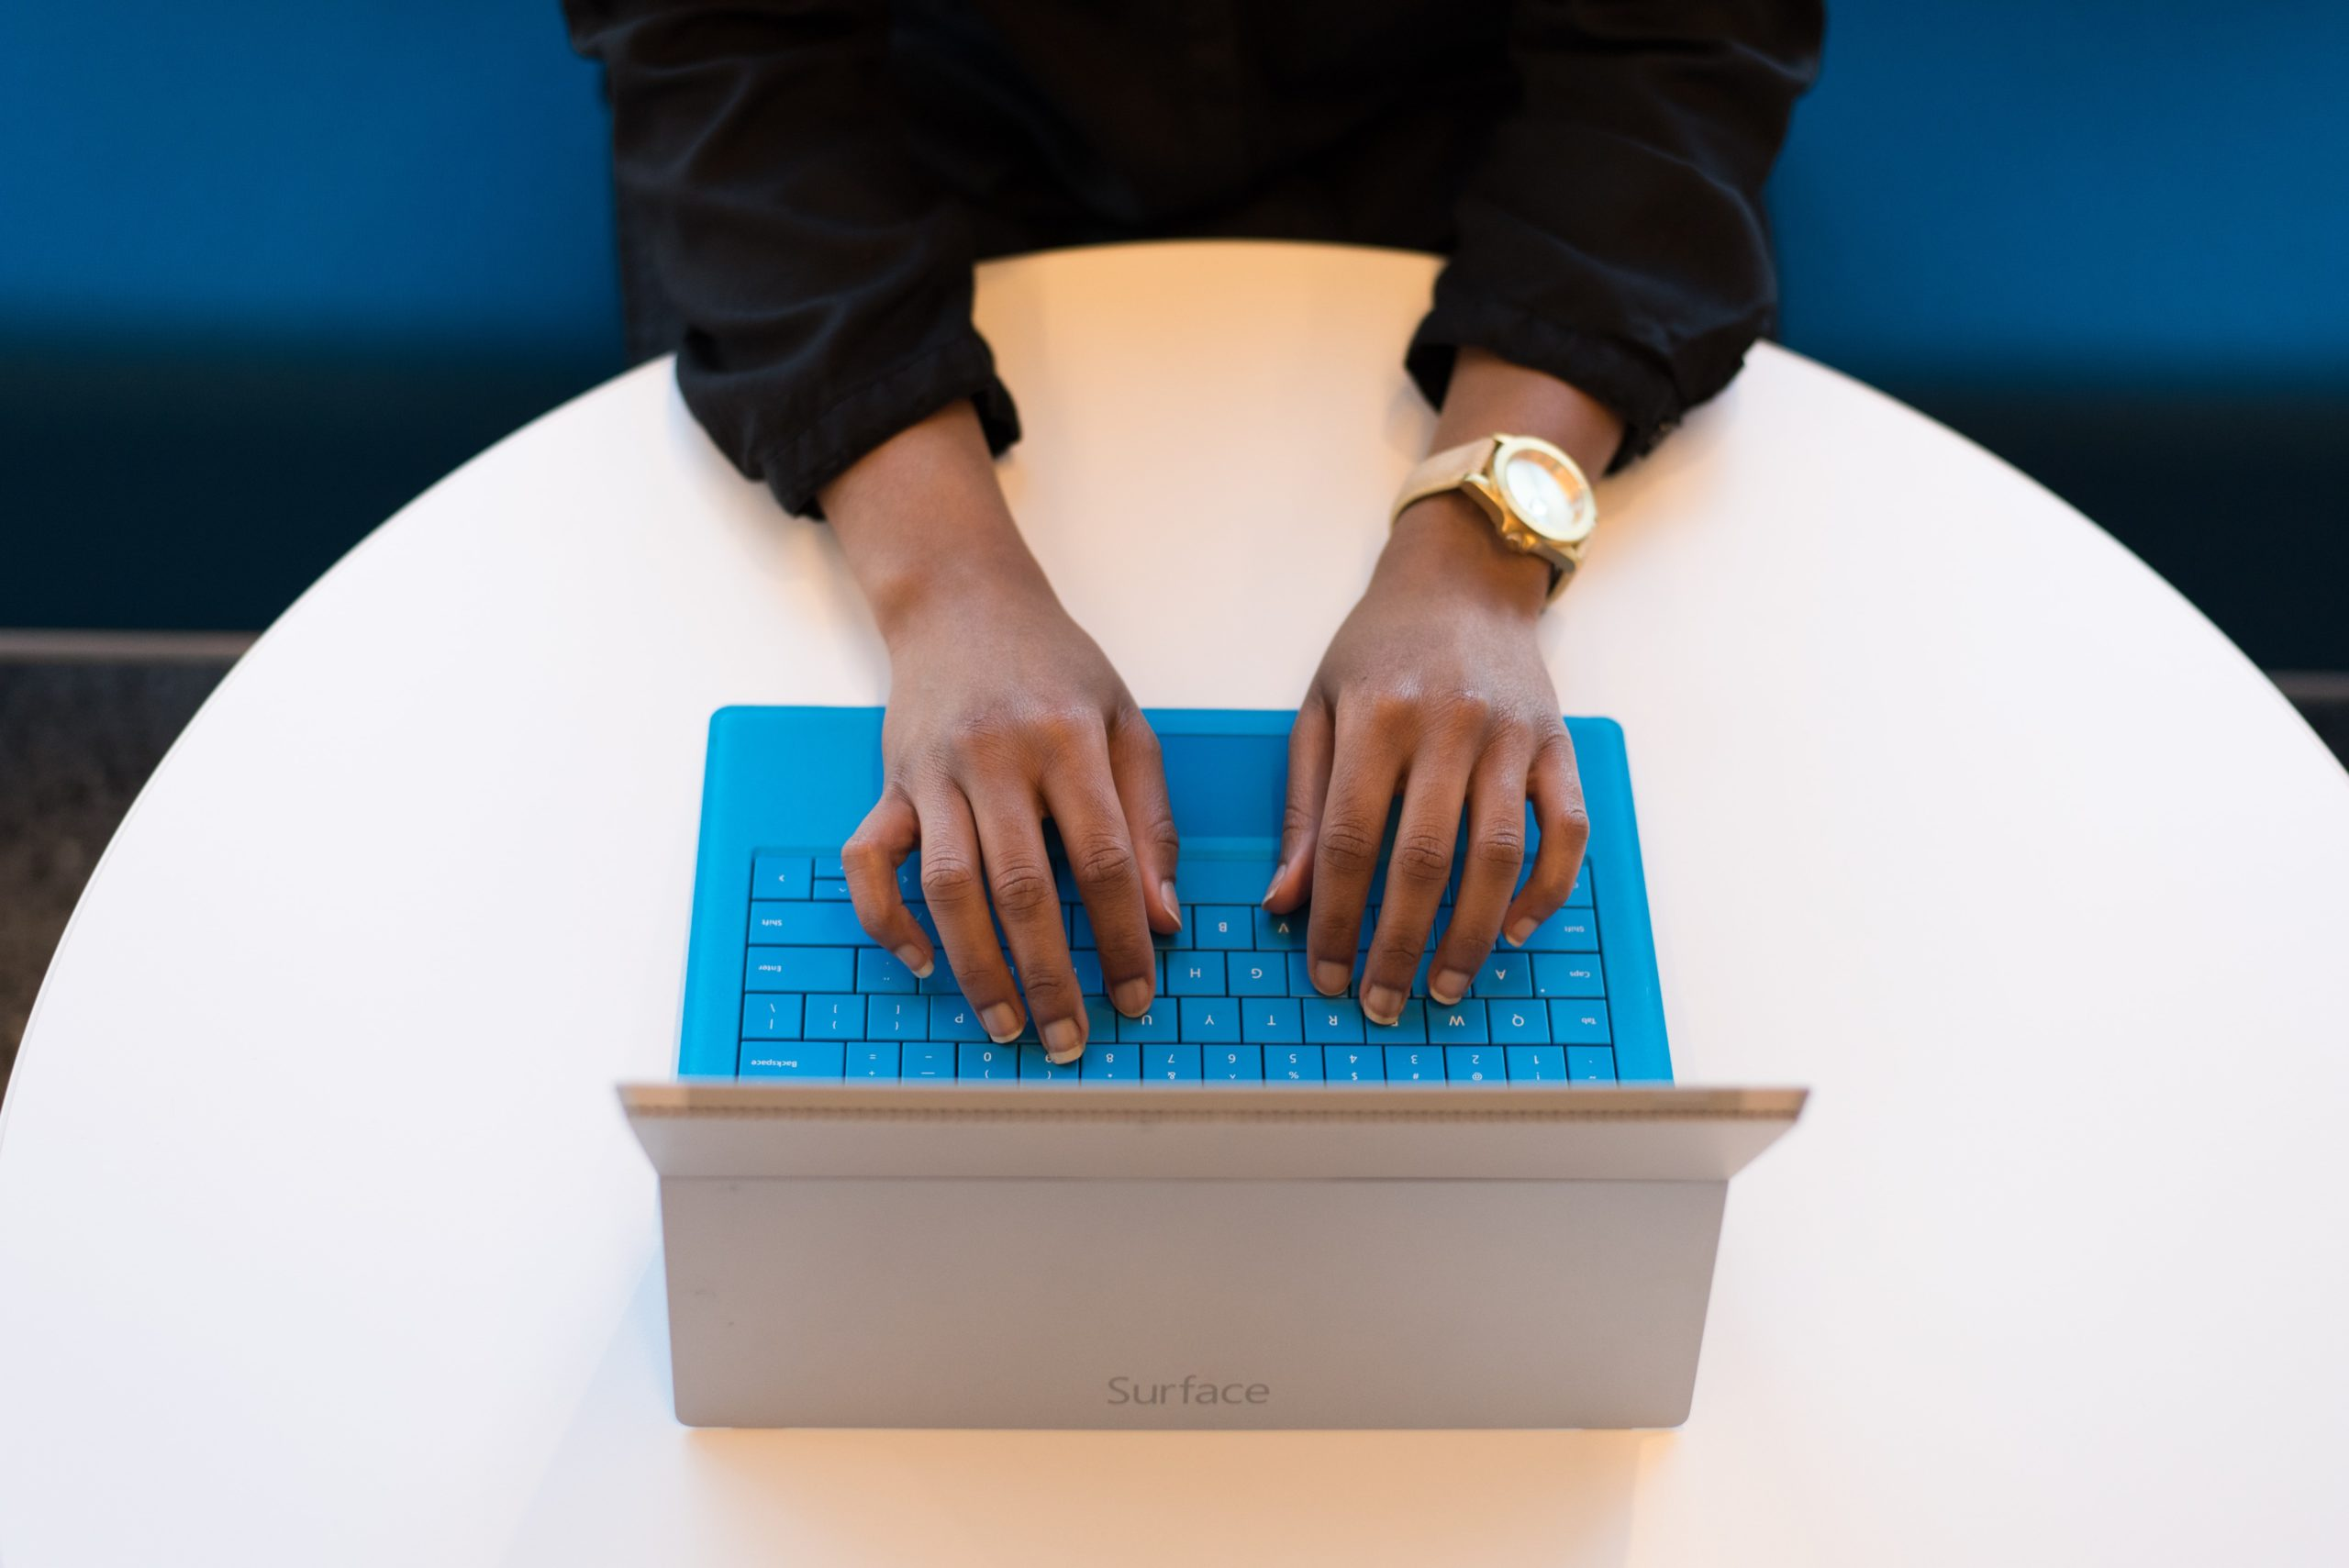 Woman's hands on laptop